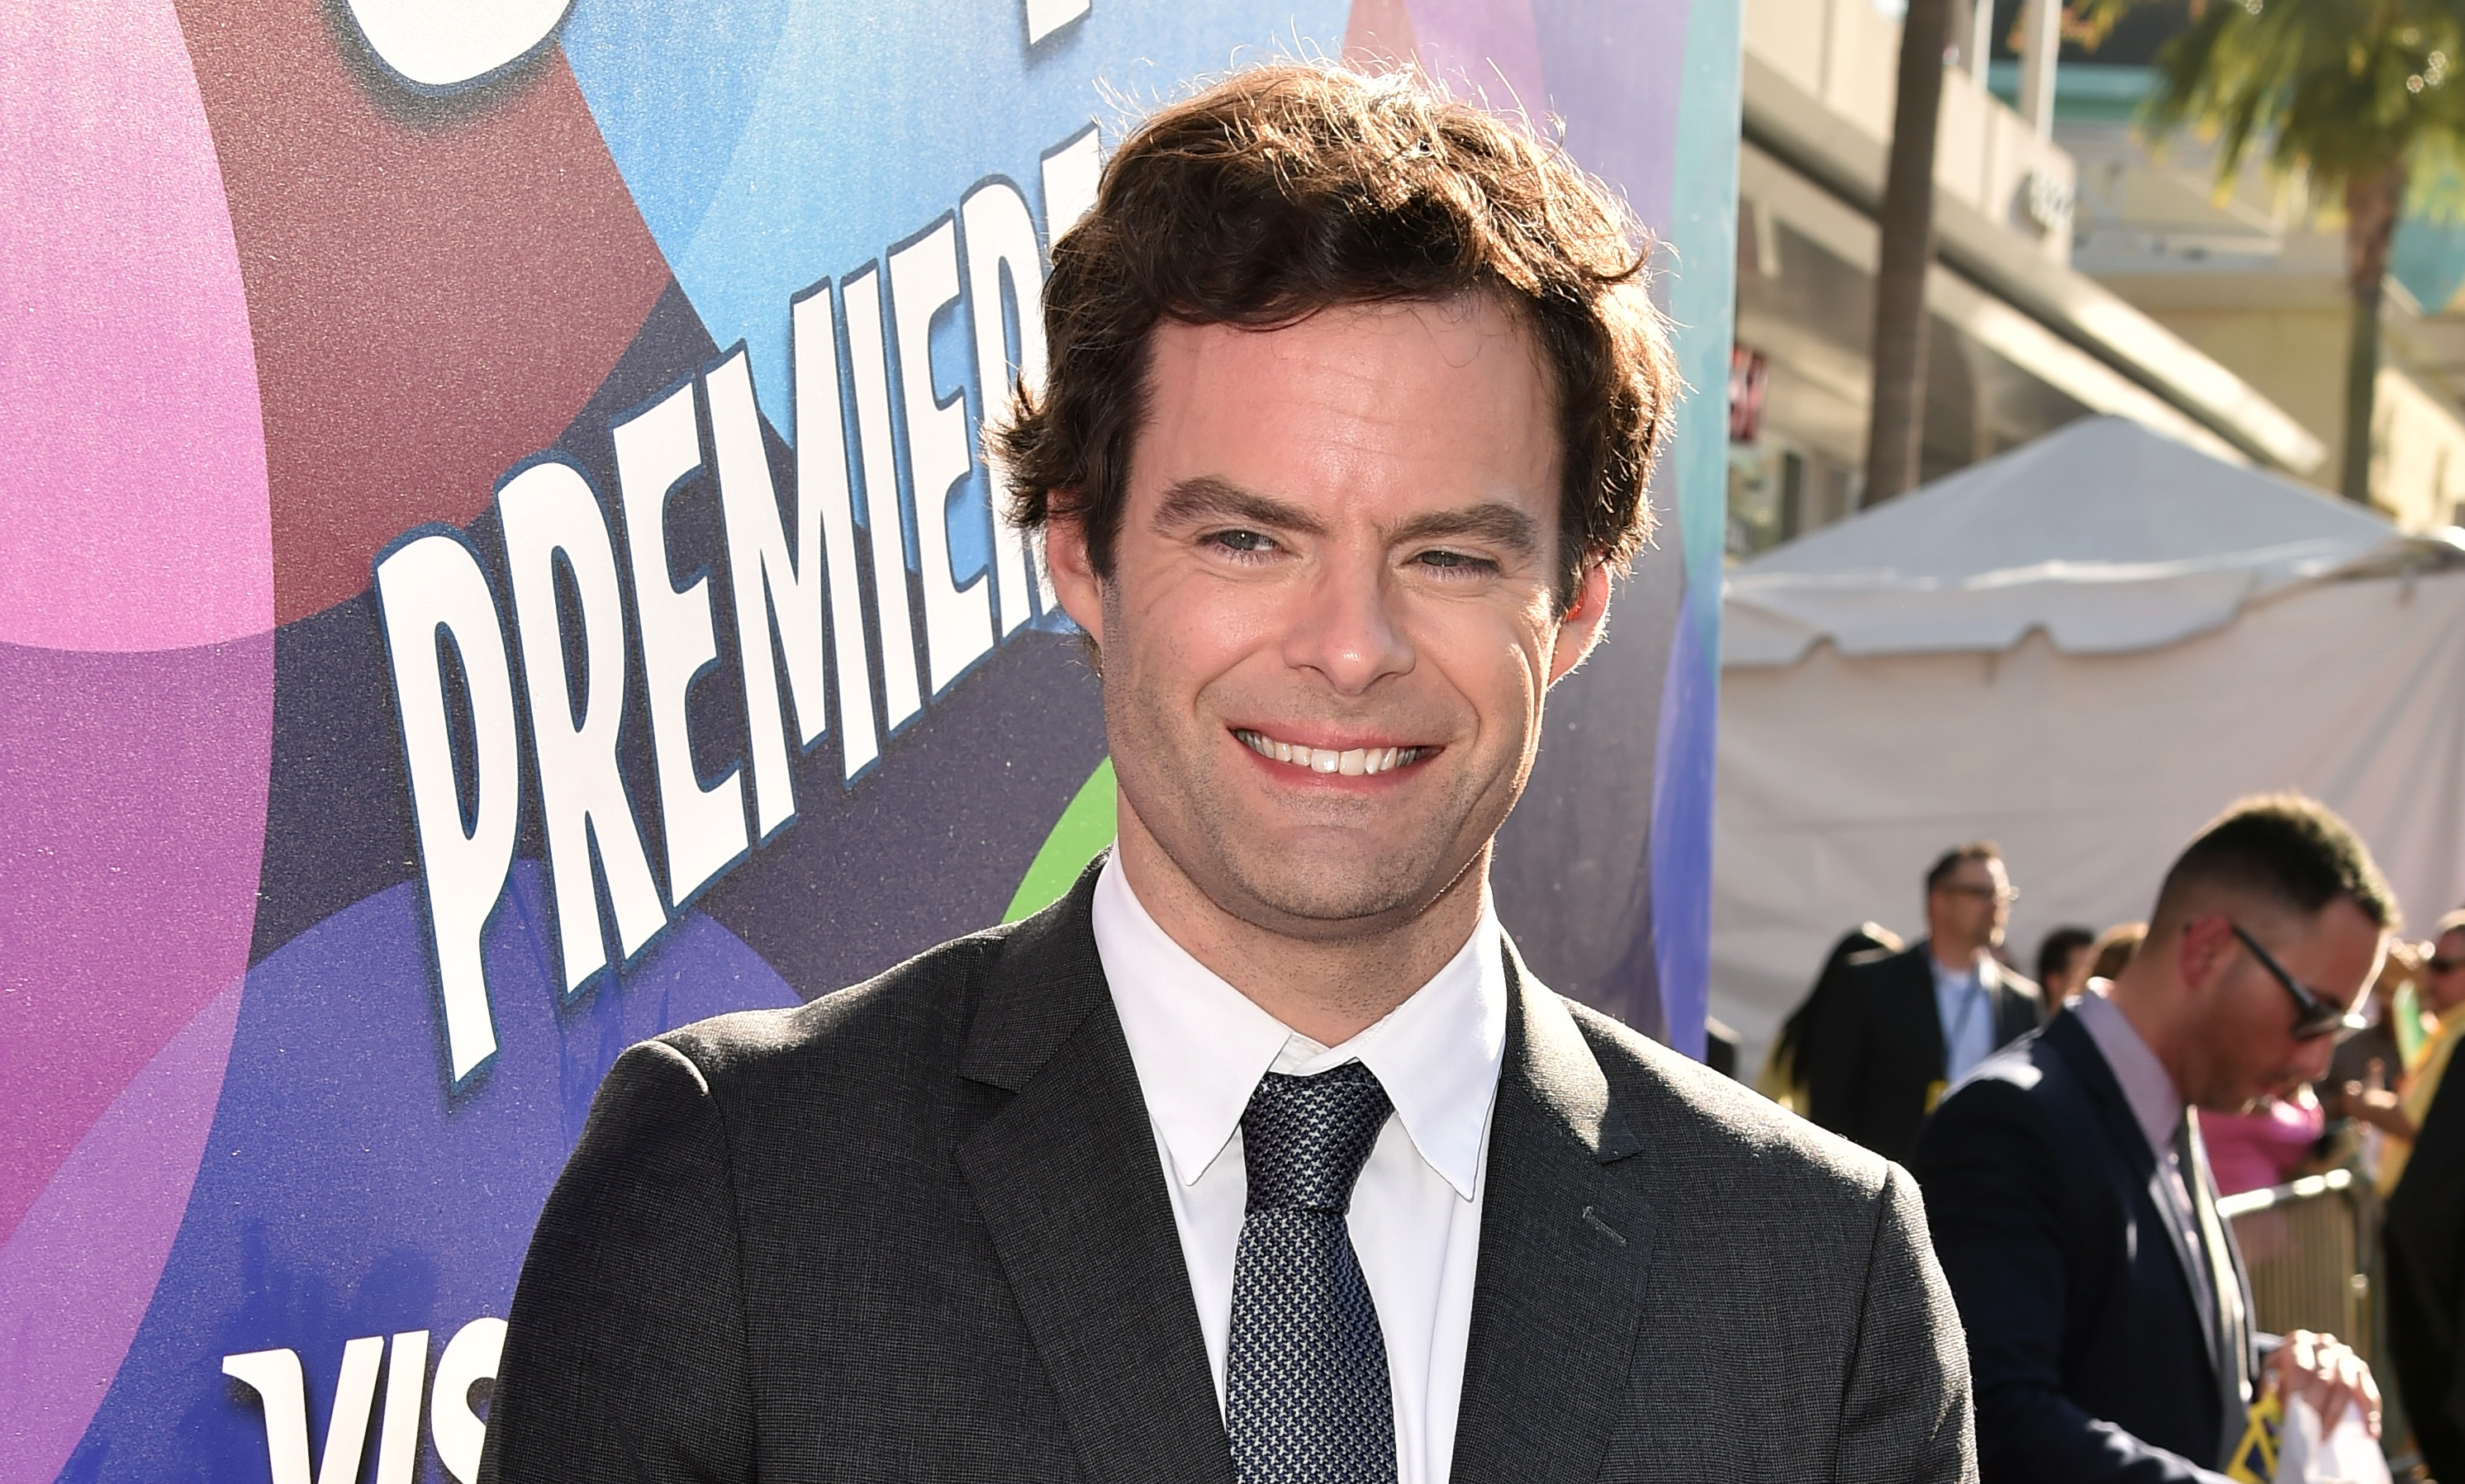 Before he was at Iroquois High School on June 11, actor Bill Hader went to the premiere of Disney-Pixar's 'Inside Out' on June 8 in Hollywood. (Getty Images)